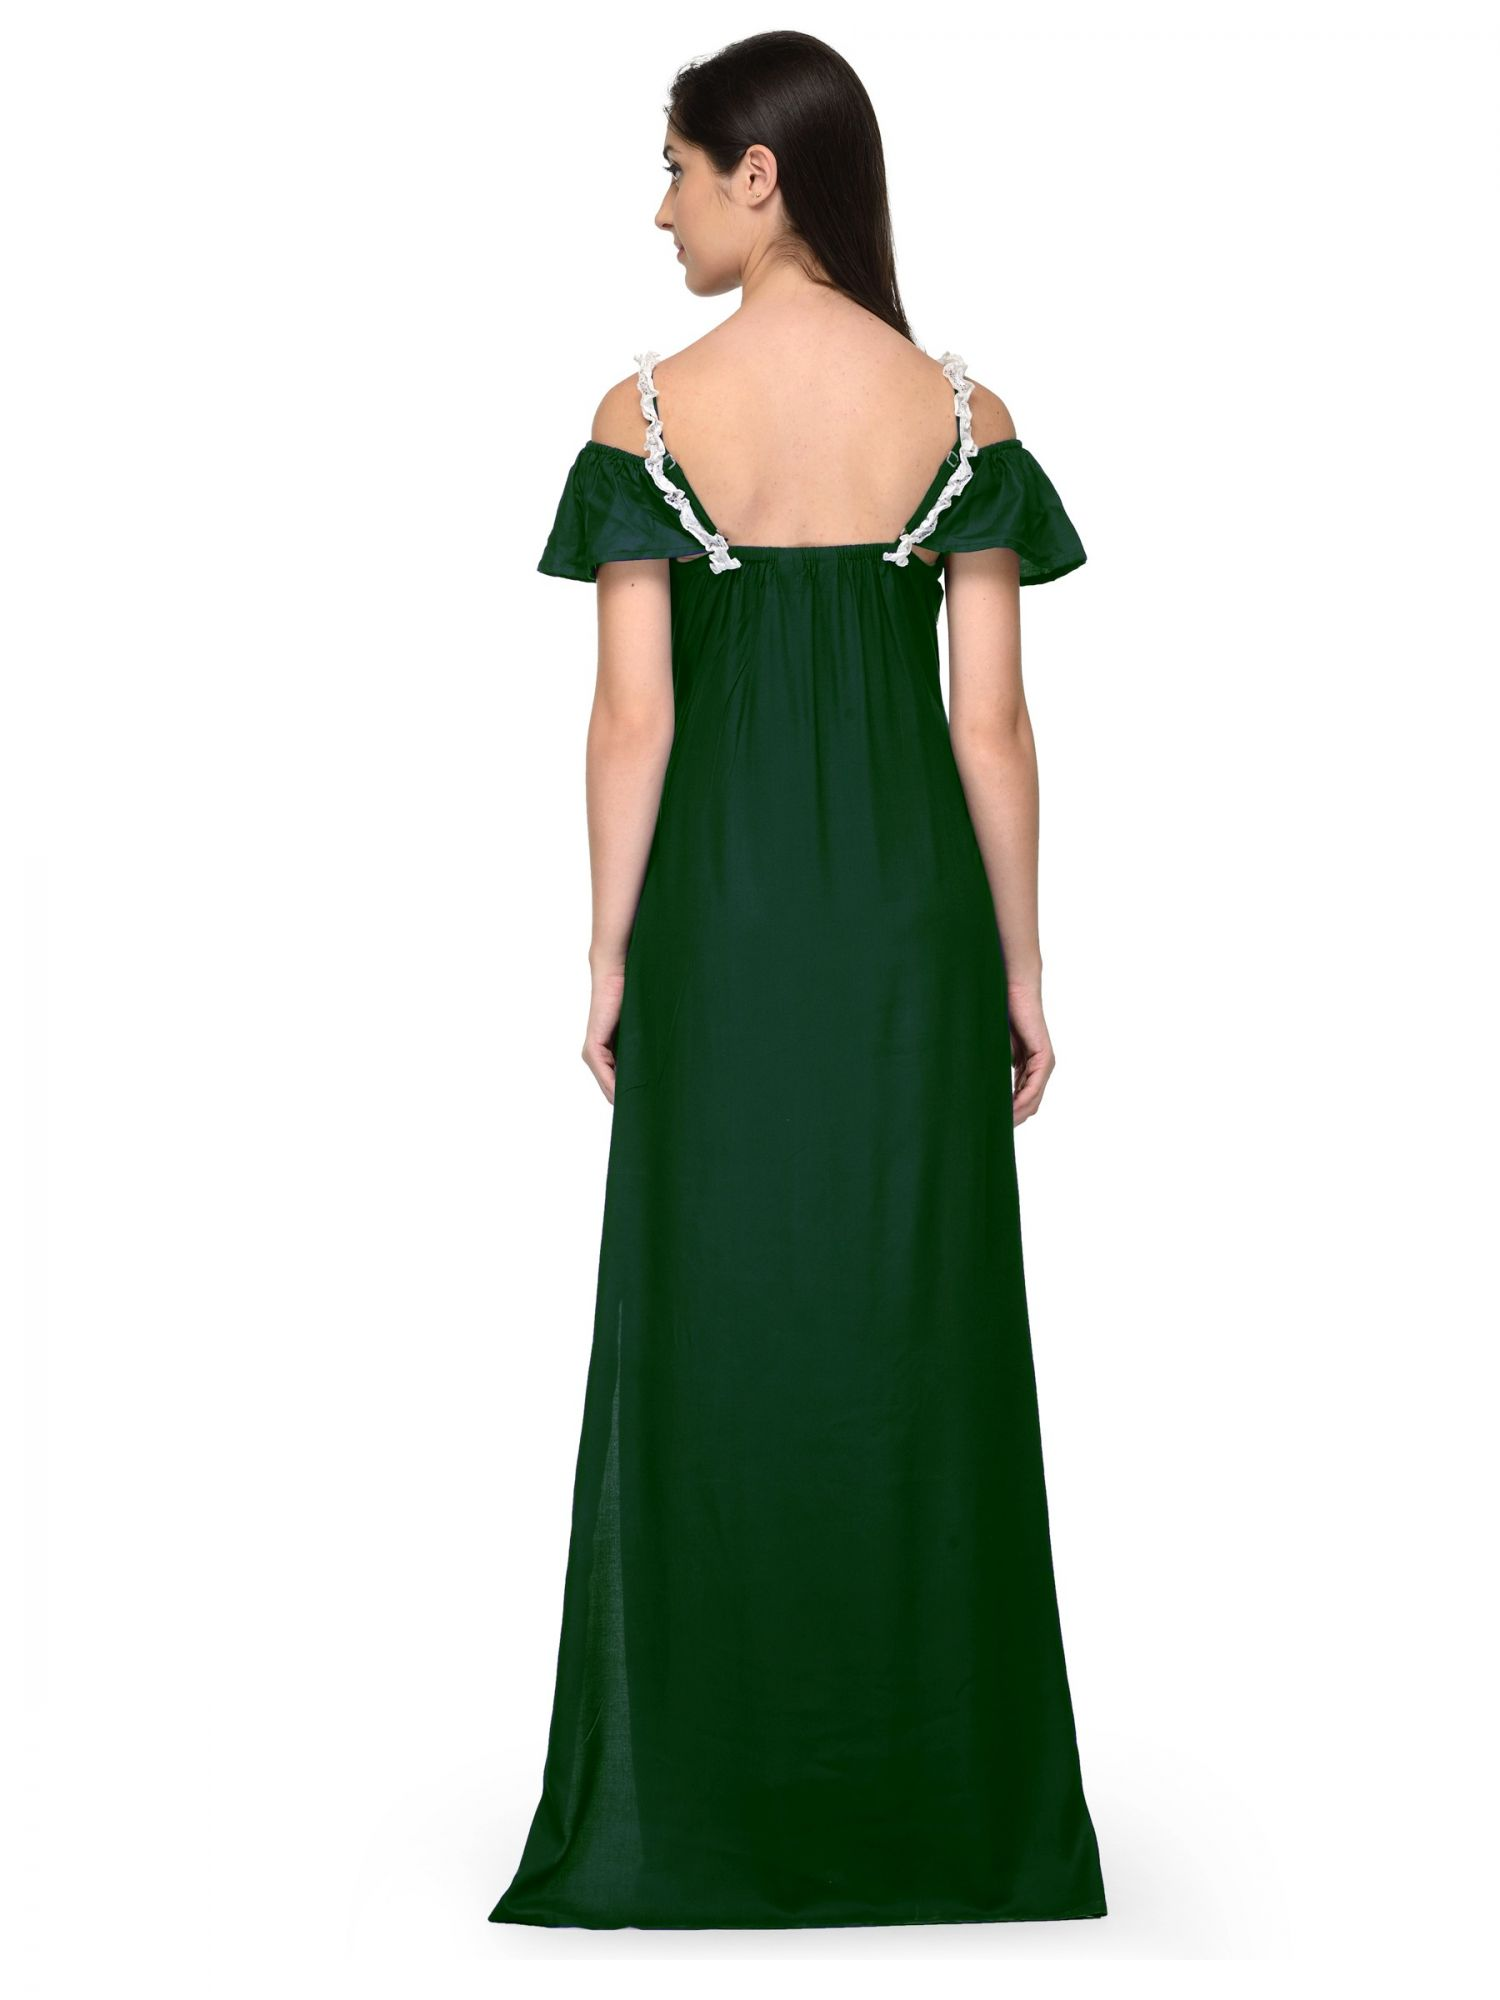 Embellished Bodice Maxi Dress Gown in White:Bottle Green